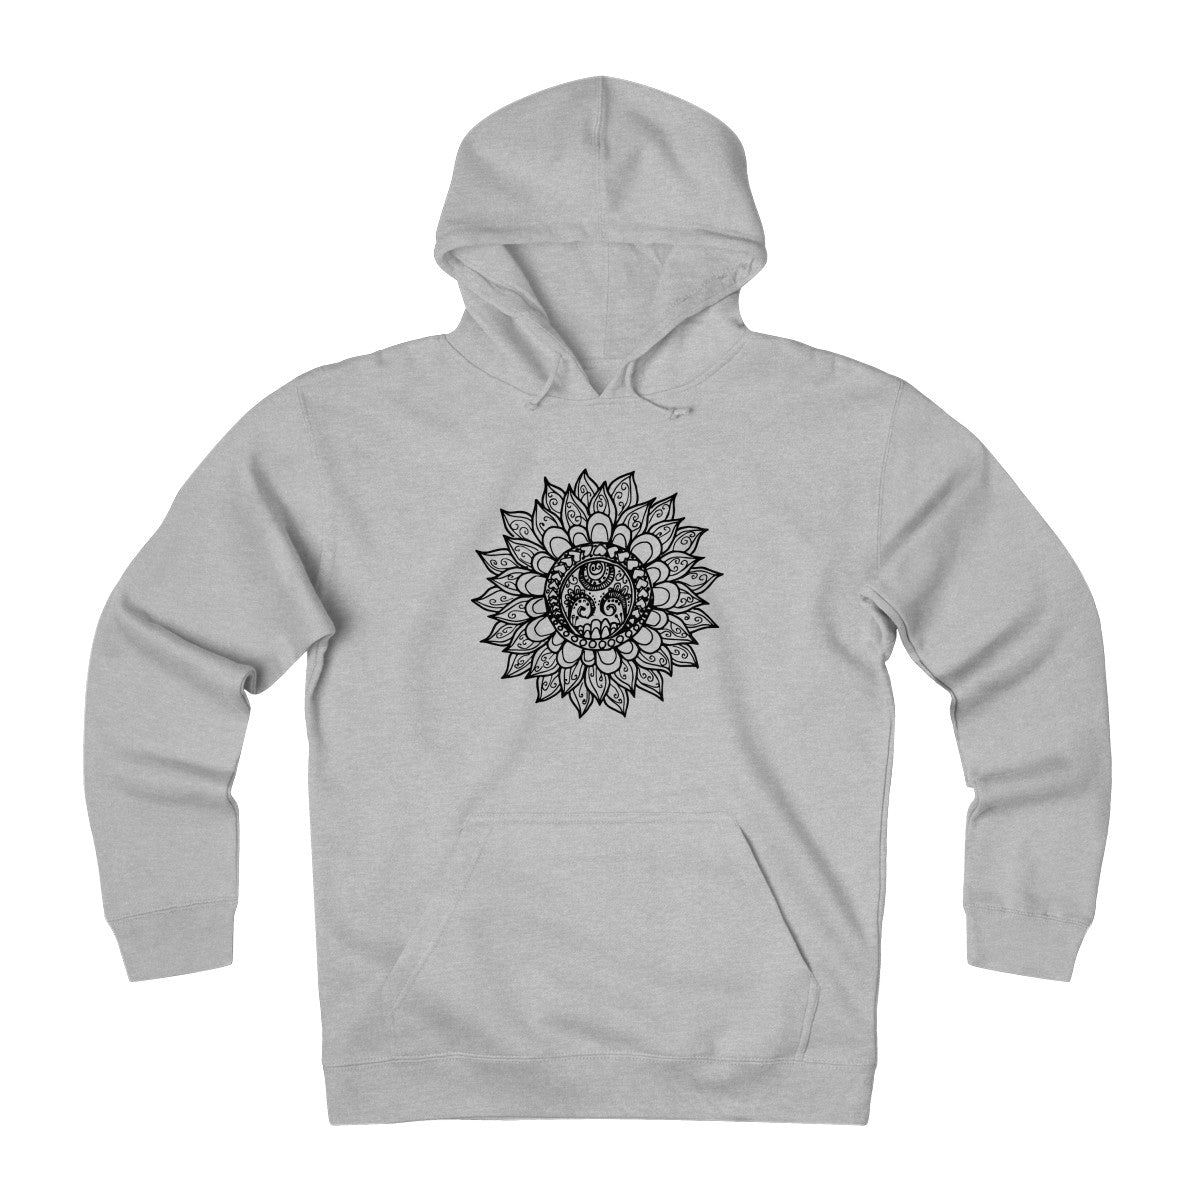 Doula Dorie Hoodie